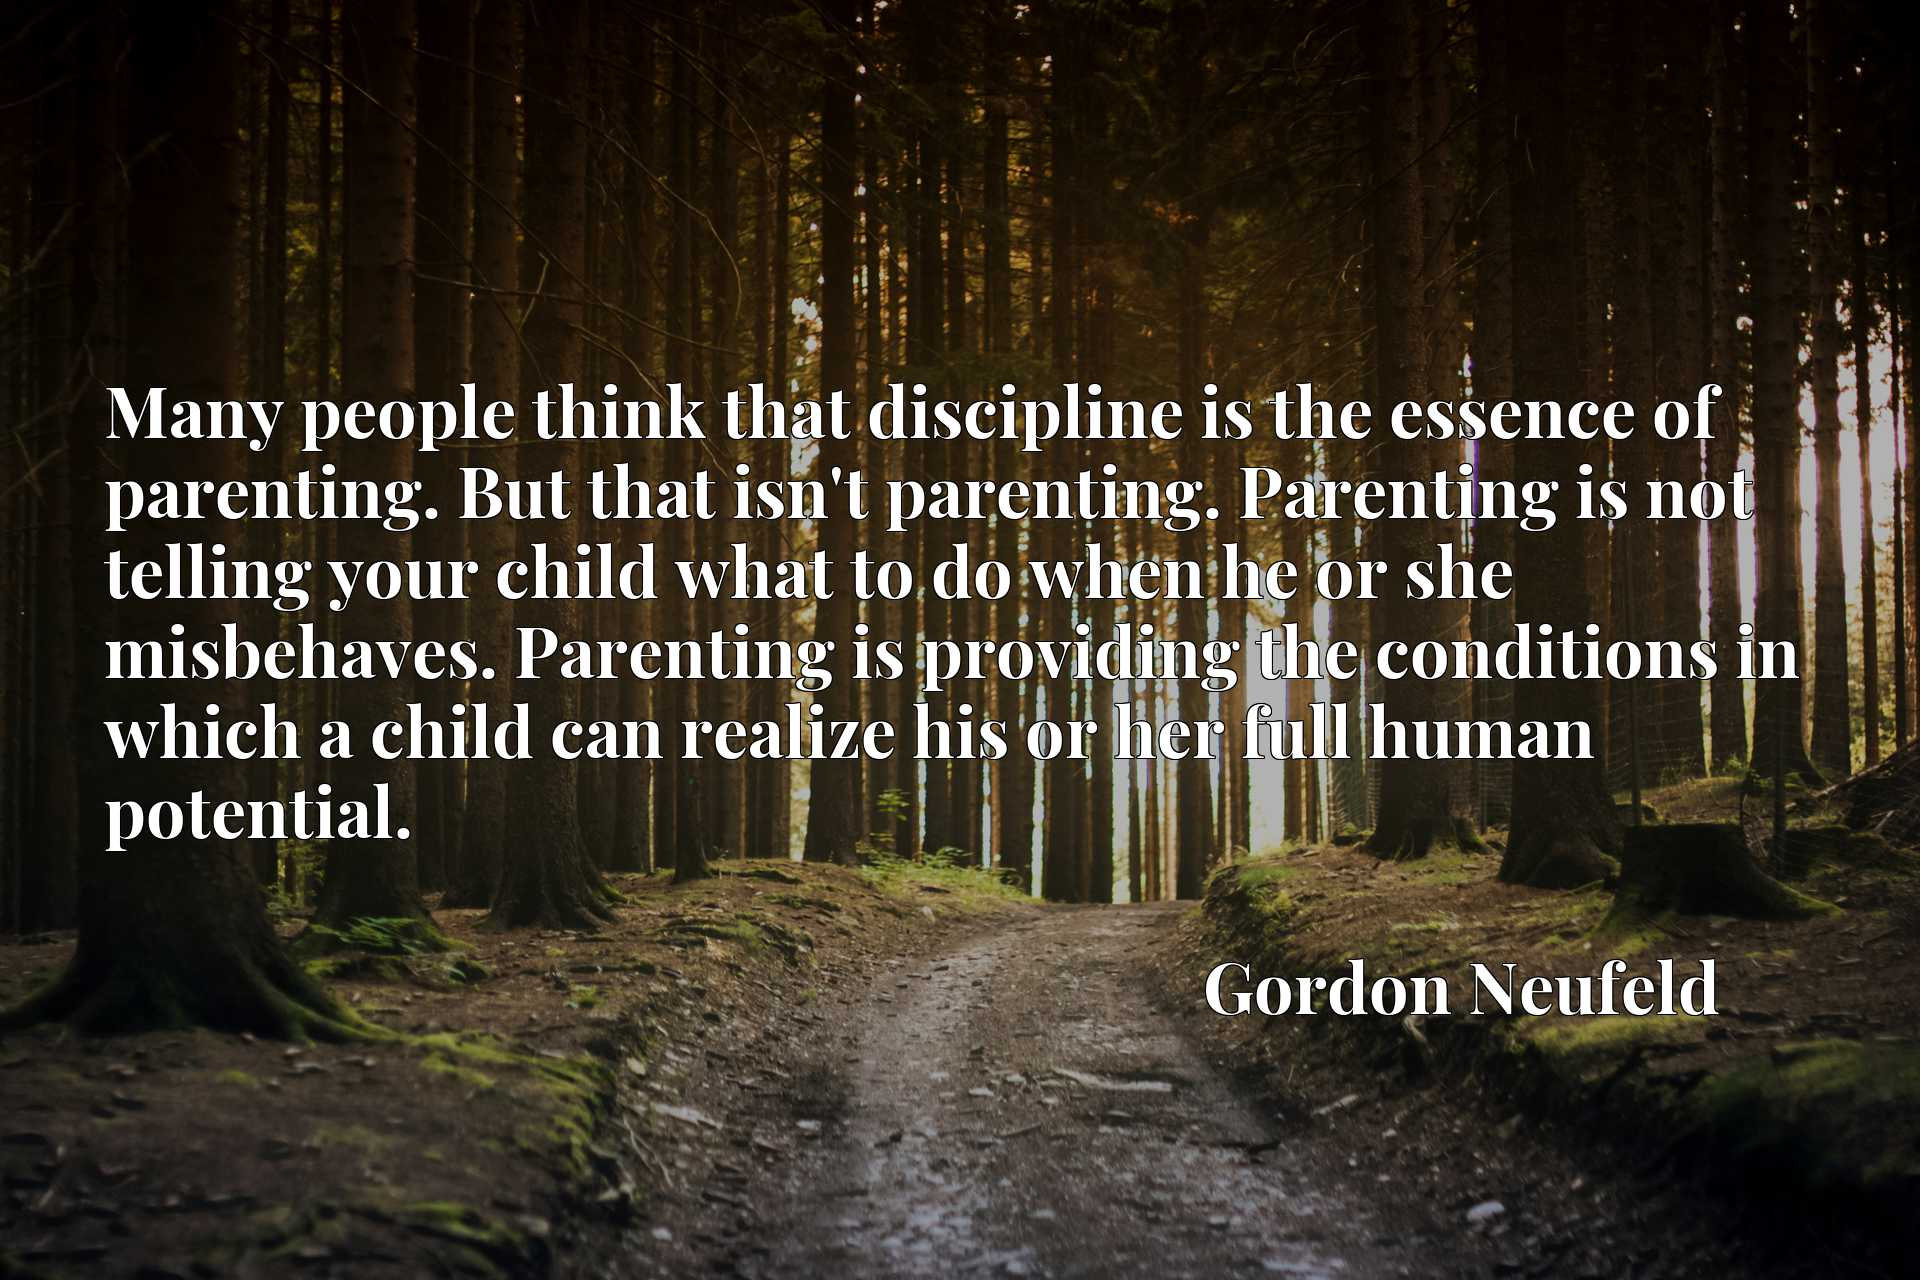 Many people think that discipline is the essence of parenting. But that isn't parenting. Parenting is not telling your child what to do when he or she misbehaves. Parenting is providing the conditions in which a child can realize his or her full human potential.